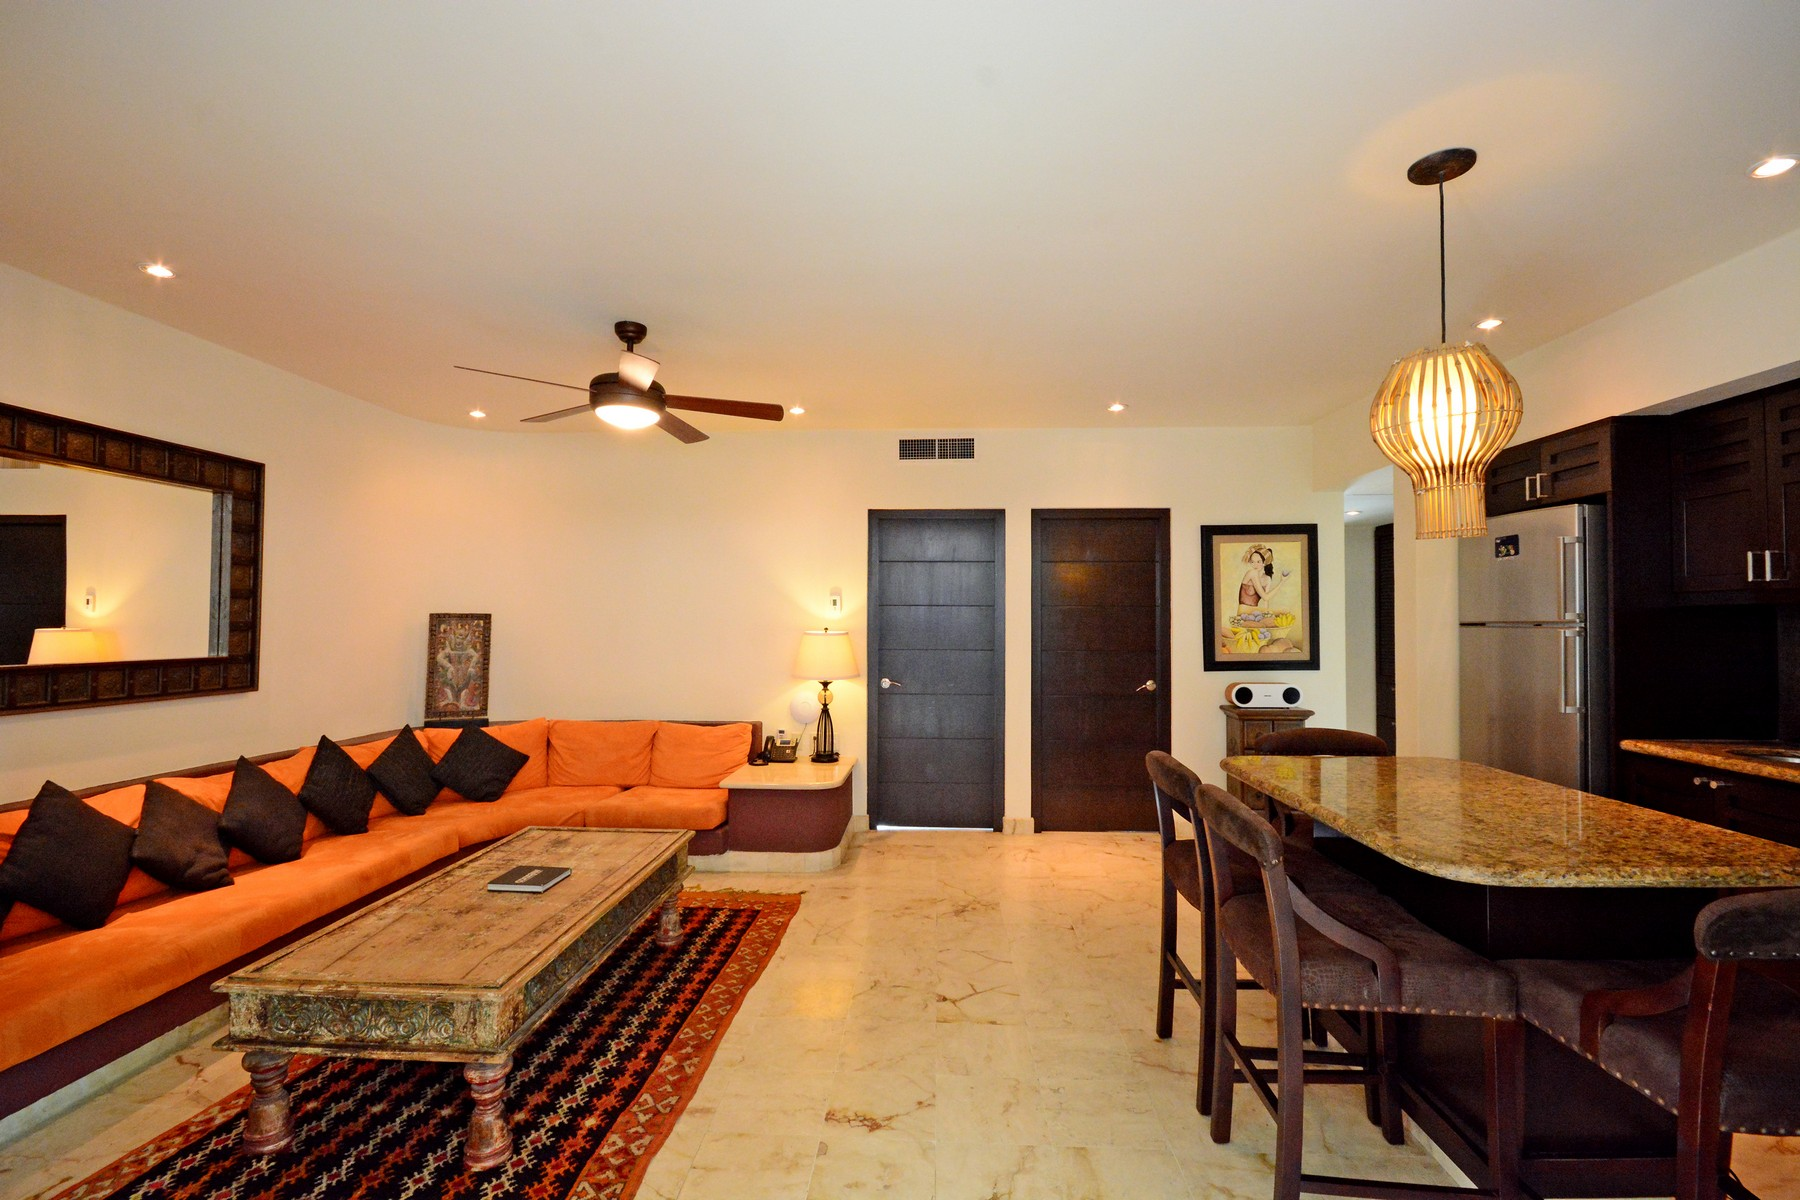 Additional photo for property listing at INSPIRADOR DEPARTAMENTO DE FRENTE DE PLAYA Oceanfront,  3rd Level, El Taj Calle 1era Nte, entre 12 y 14 Nte. Playa Del Carmen, Quintana Roo 77710 México